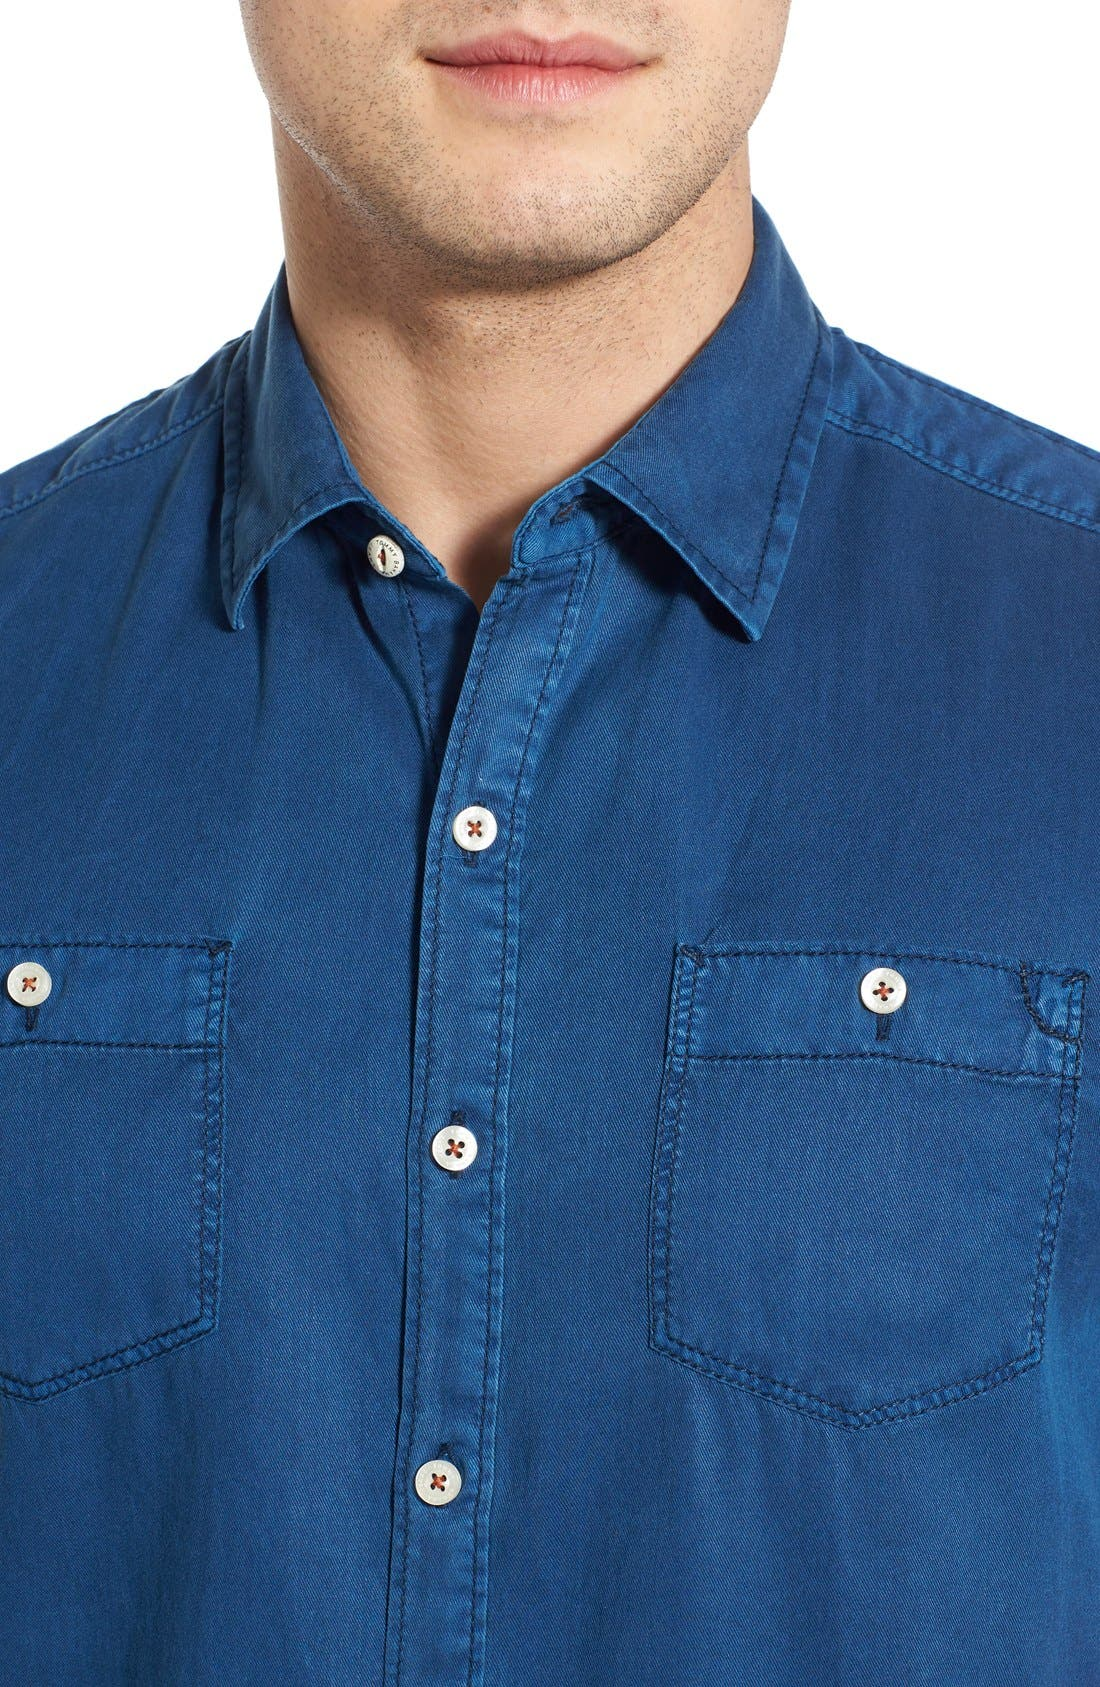 'New Twilly' Island Modern Fit Short Sleeve Twill Shirt,                             Alternate thumbnail 39, color,